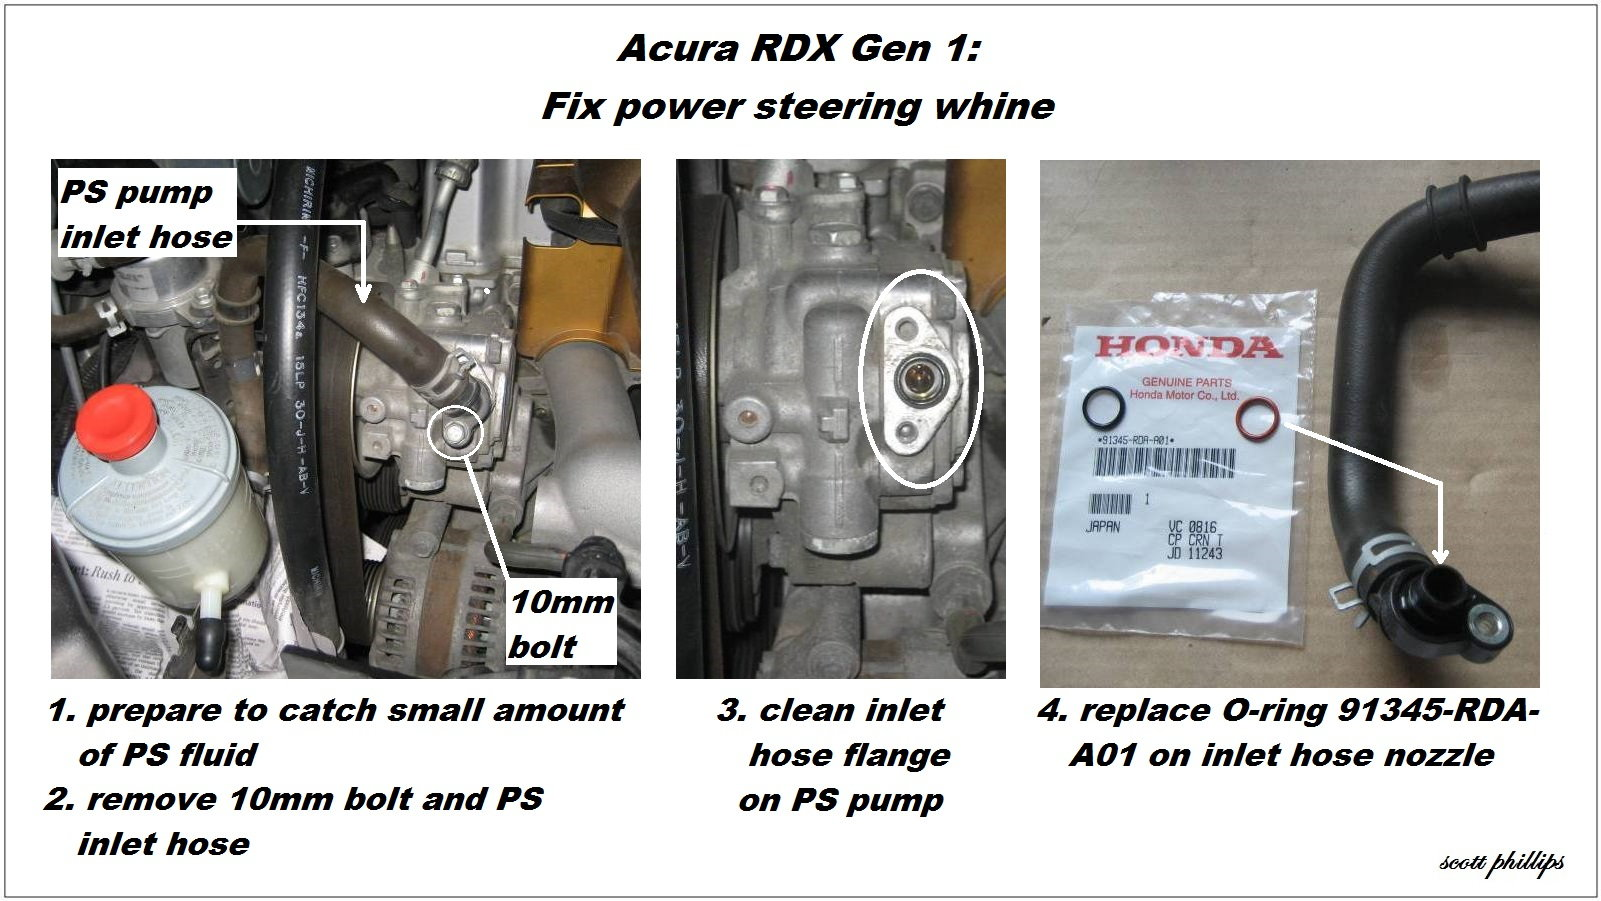 Acura RDX Engine Noise Diagnostic Guide - Acurazine